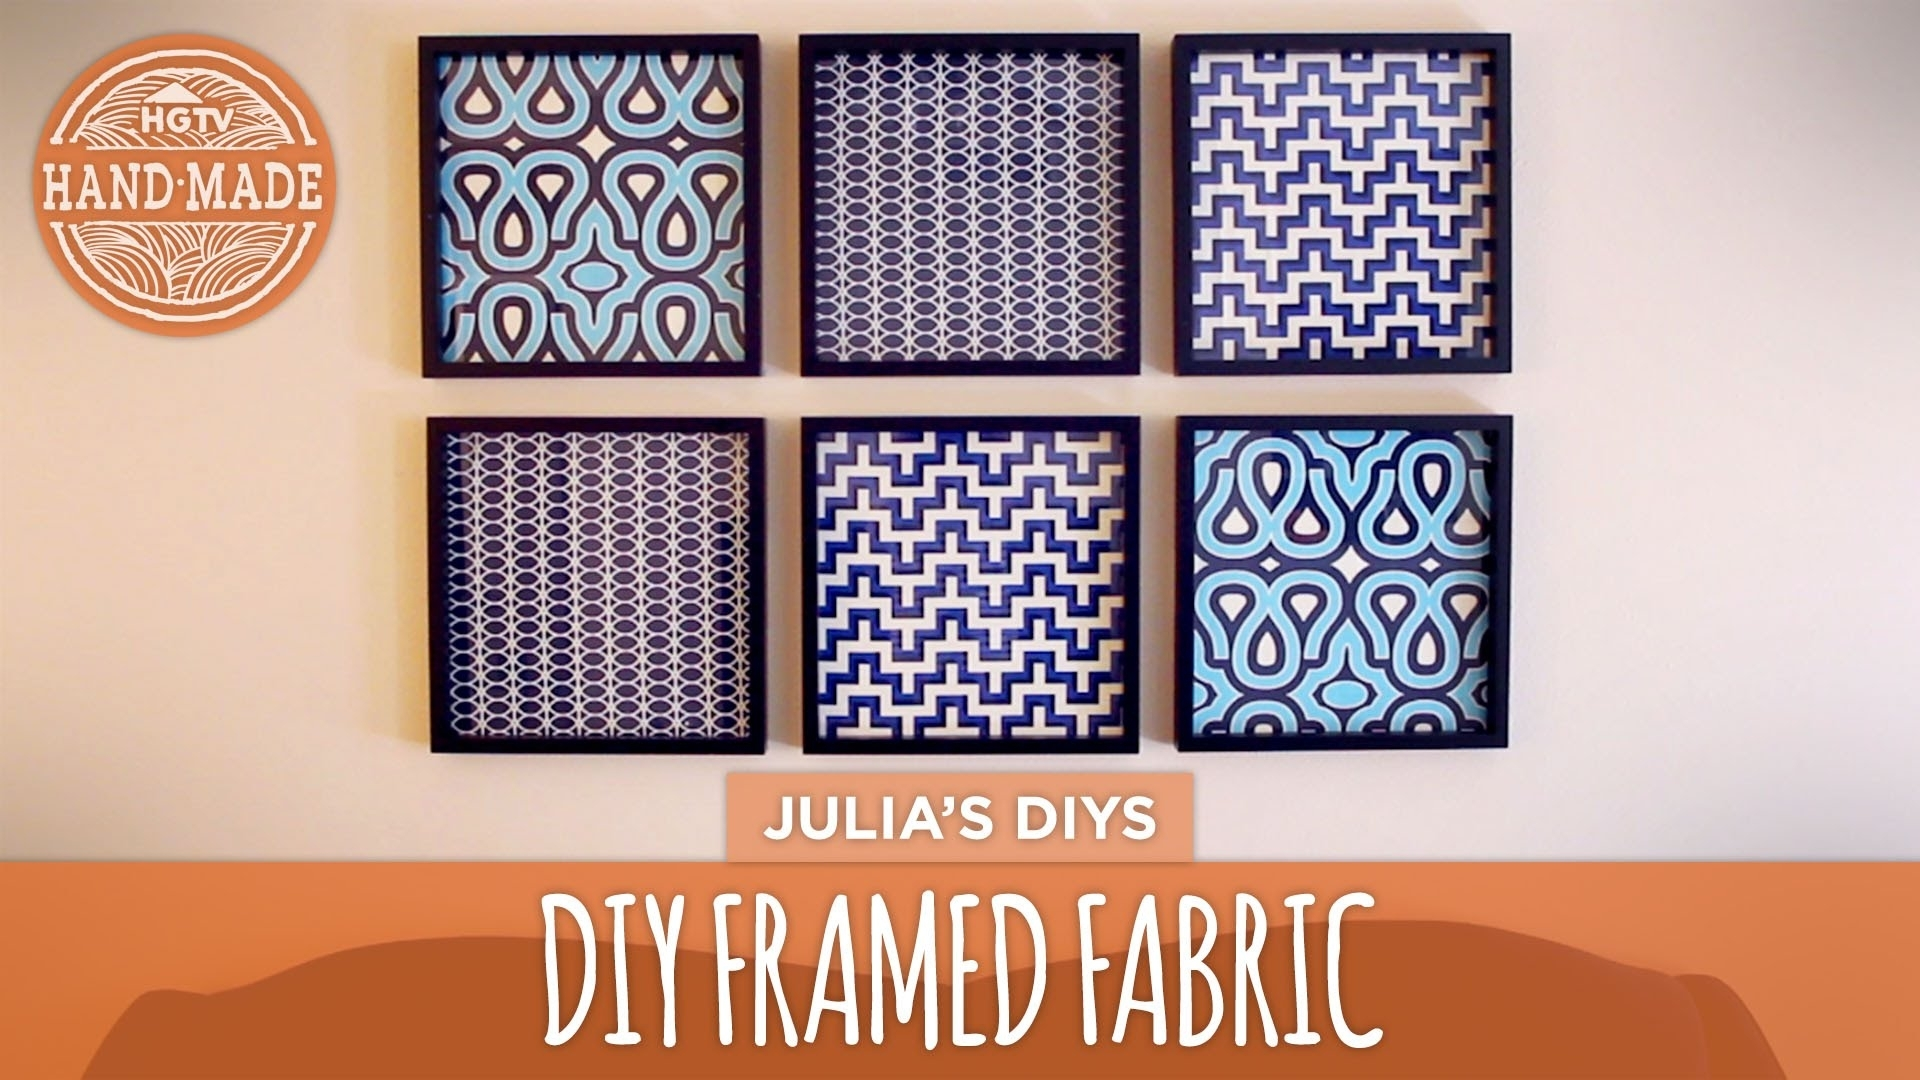 Diy Framed Fabric Gallery Wall – Hgtv Handmade – Youtube Within Most Up To Date Diy Framed Fabric Wall Art (Gallery 1 of 15)